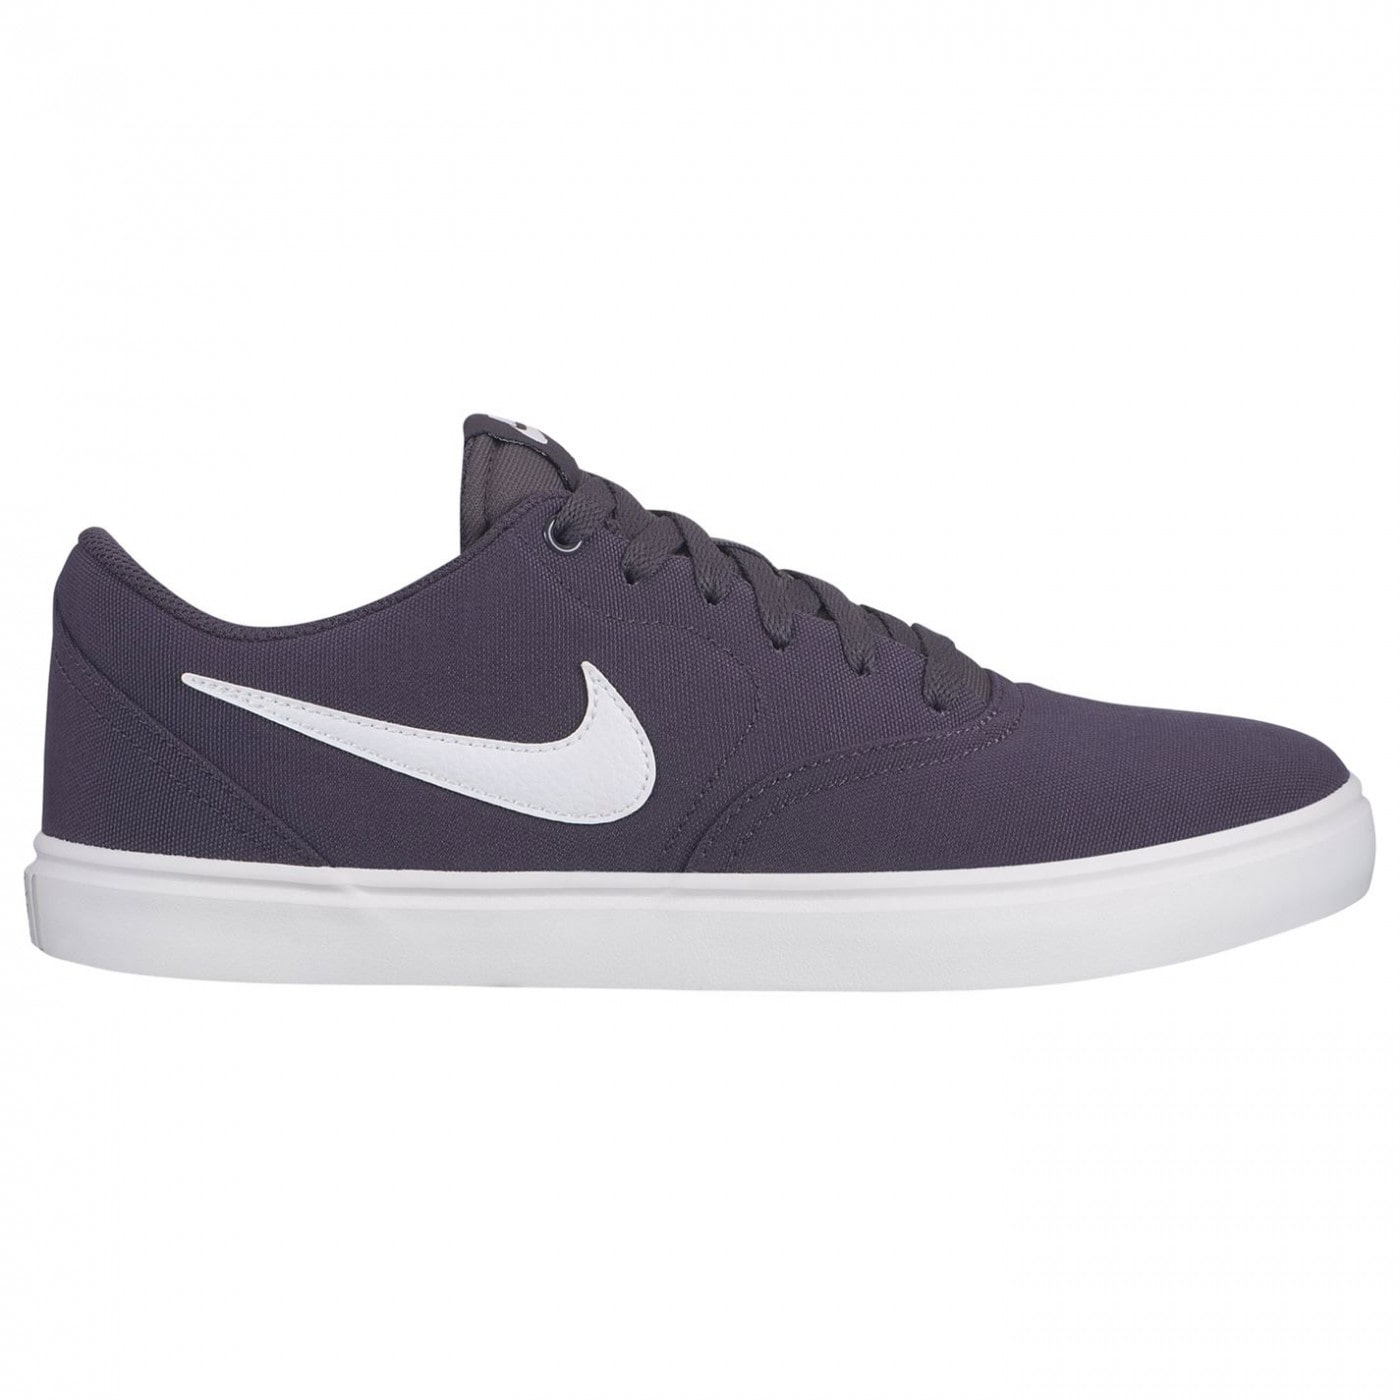 Men's trainers Nike SB Check Solar